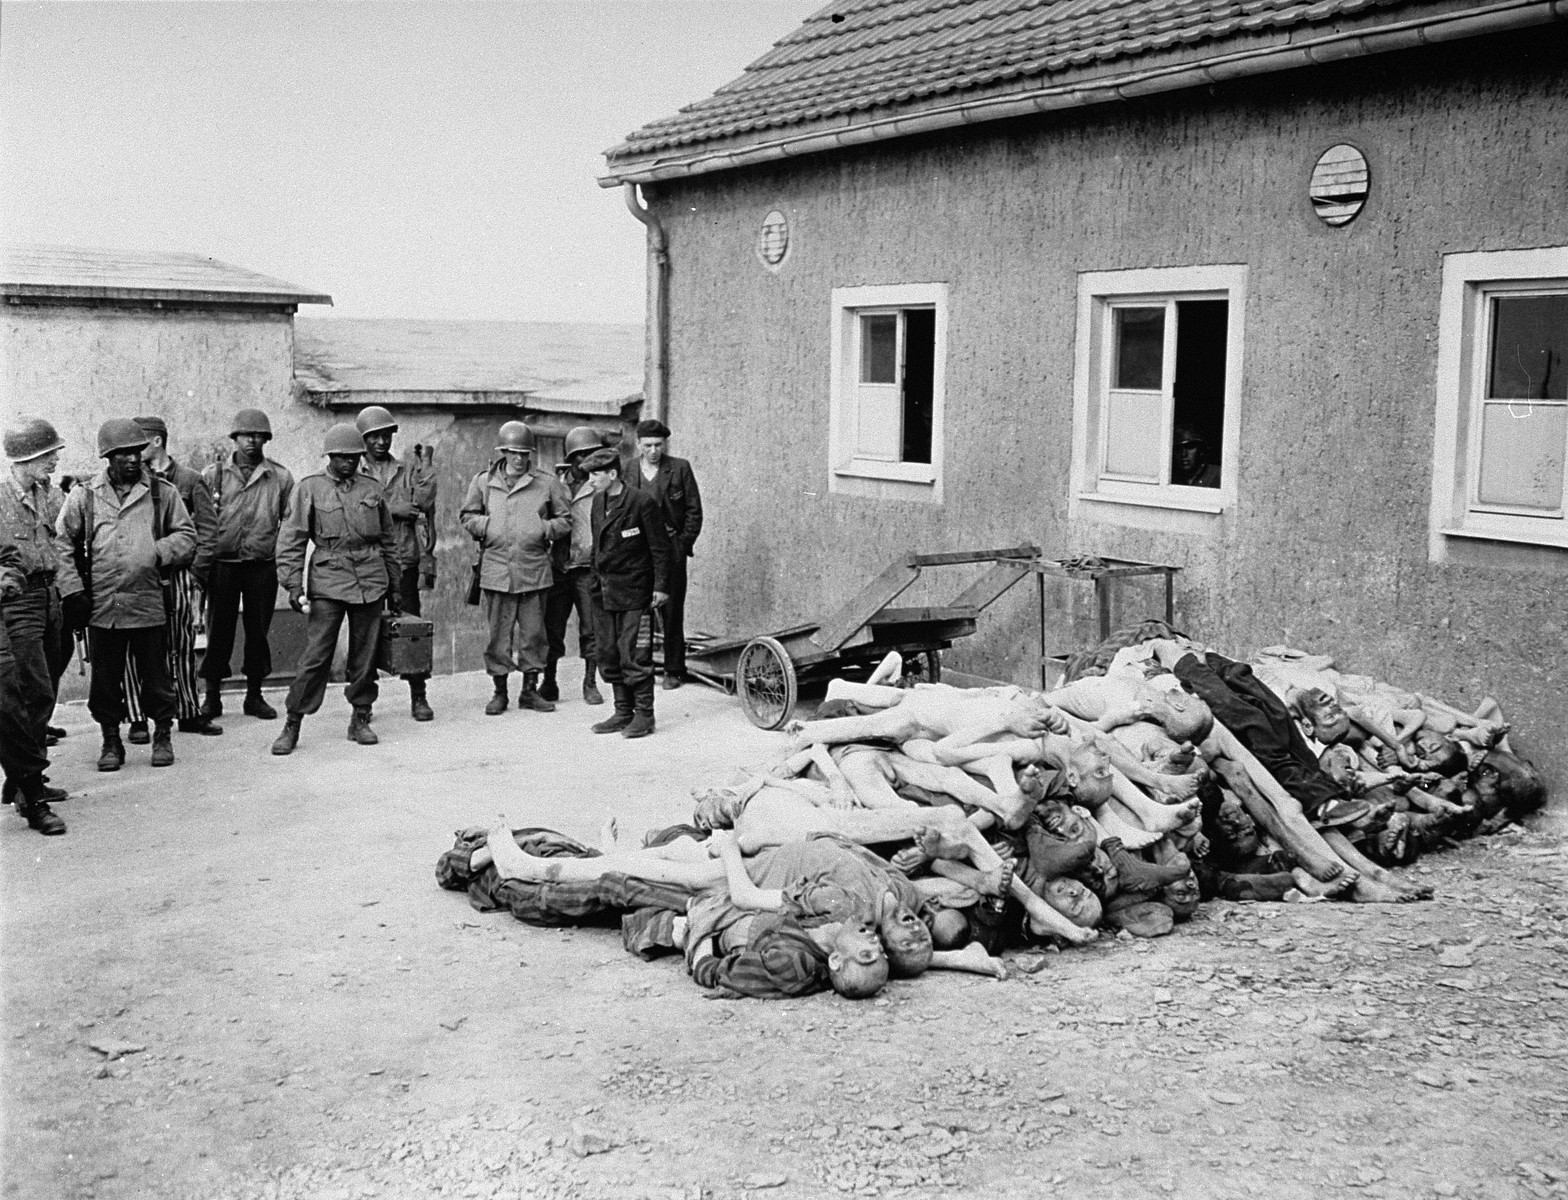 American troops, including African-American soldiers from the Headquarters and Service Company of the 183rd Engineer Combat Battalion, 8th Corps, U.S. 3rd Army, view corpses stacked behind the crematorium during an inspection tour of the Buchenwald concentration camp.  [Oversized print]  Among those pictured is Leon Bass (the soldier third from left) and Glenn S. McCrory (first, on the left).